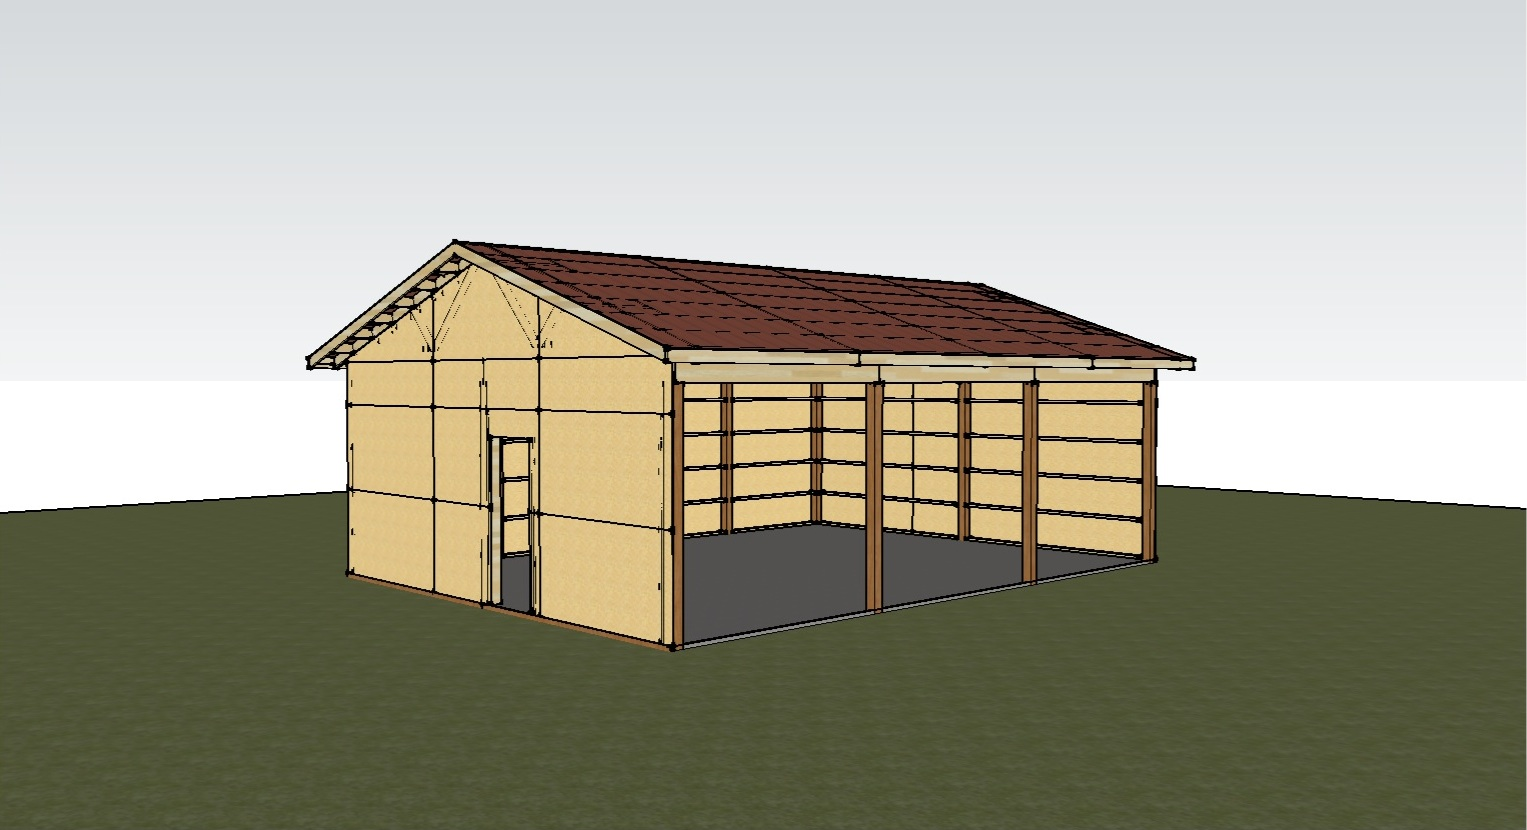 Pole barn plan joy studio design gallery best design Pole barn design plans